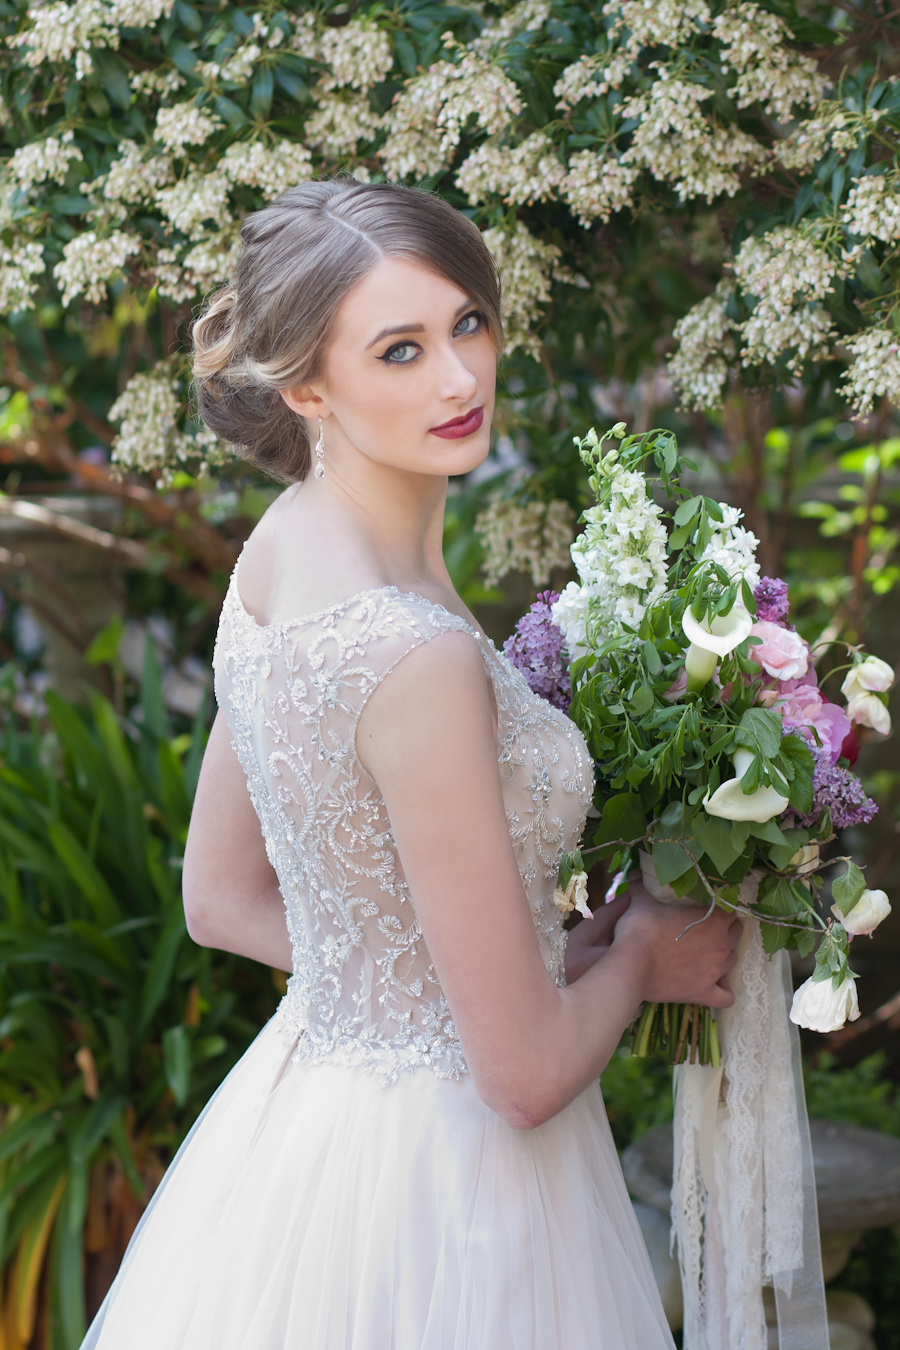 Coultish Management model in Blush Bridal dress and Sharon Rai Hair and Makeup Artistry styling